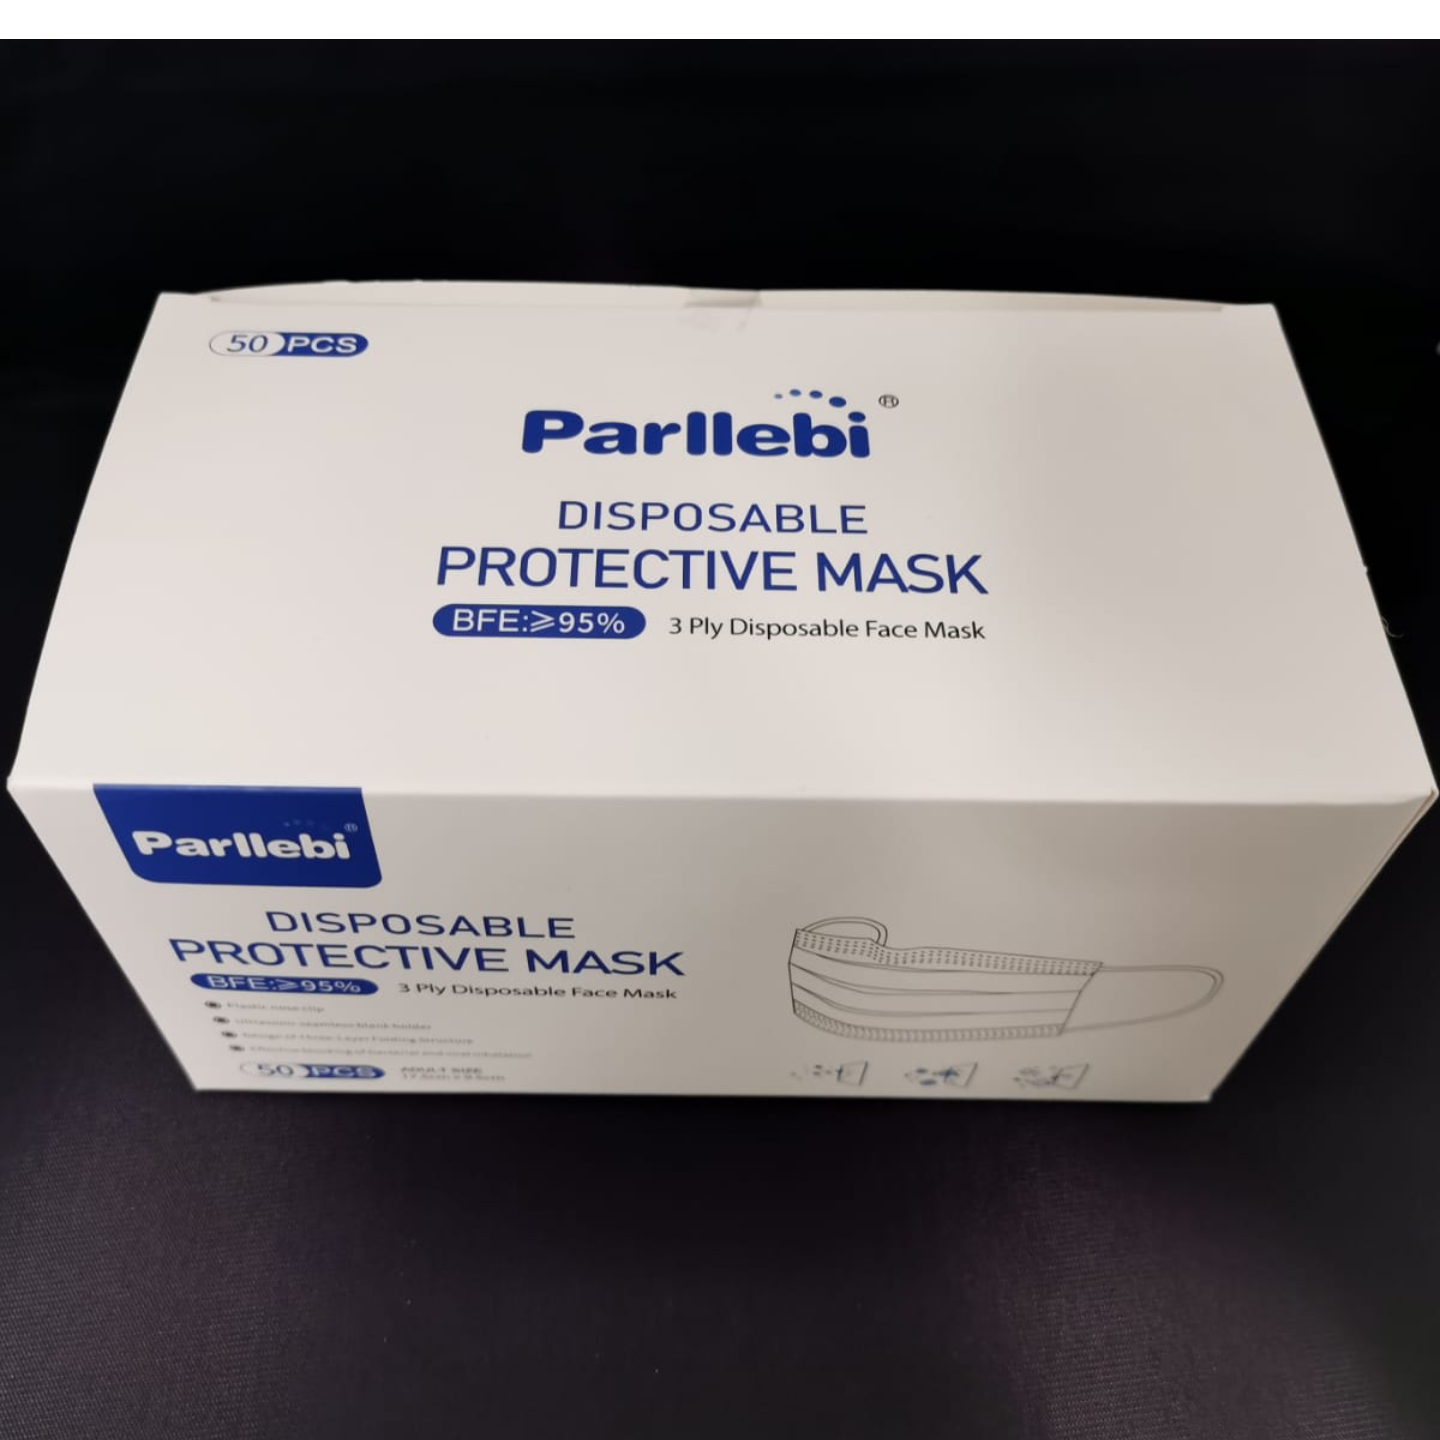 Parllebi Disposable Protective Mask